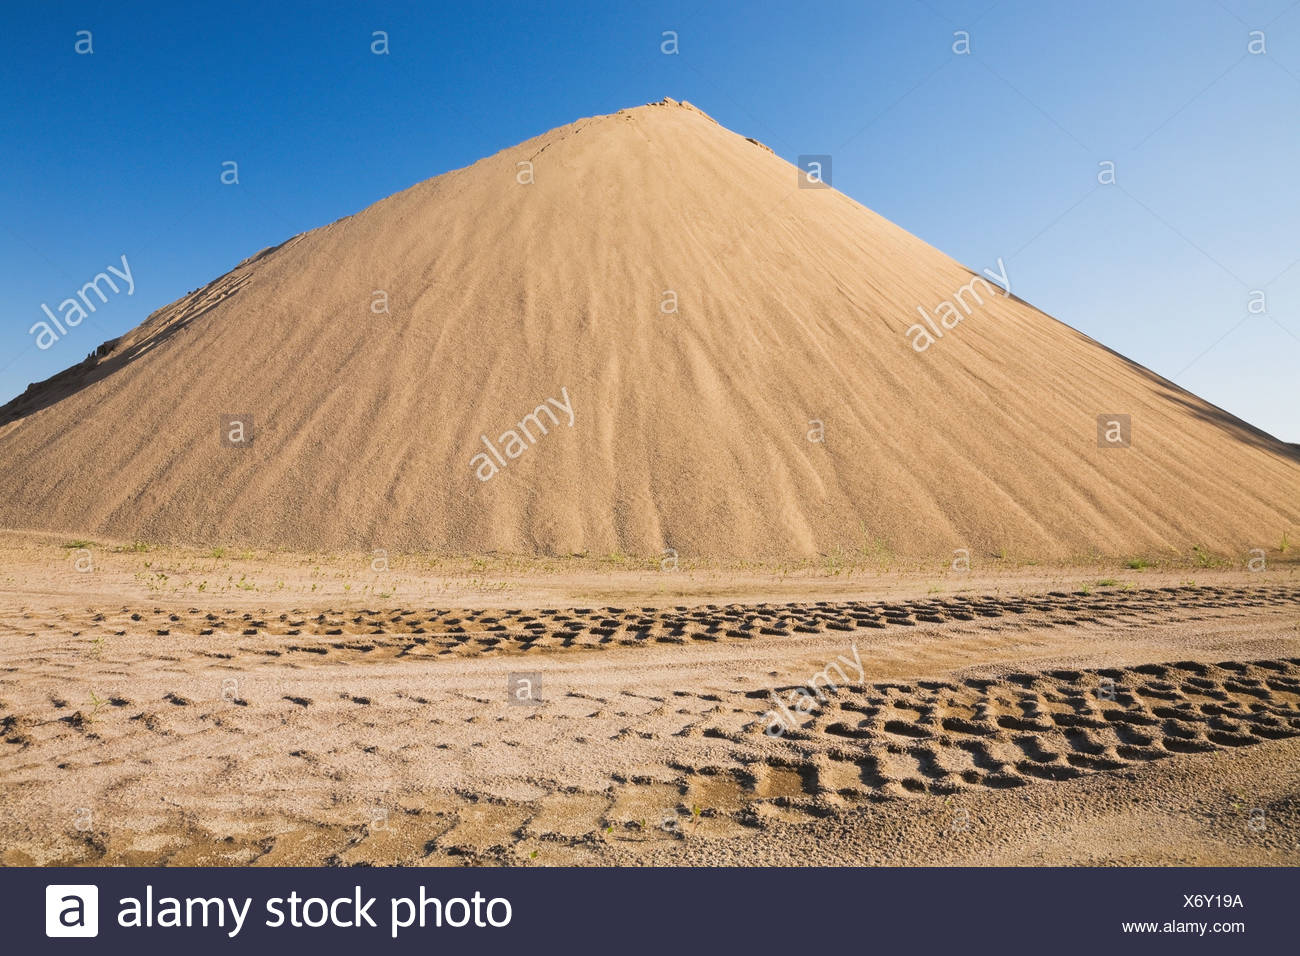 Heavy Tire Tracks And A Mound Of Sand In A Commercial Sandpit; Quebec Canada - Stock Image